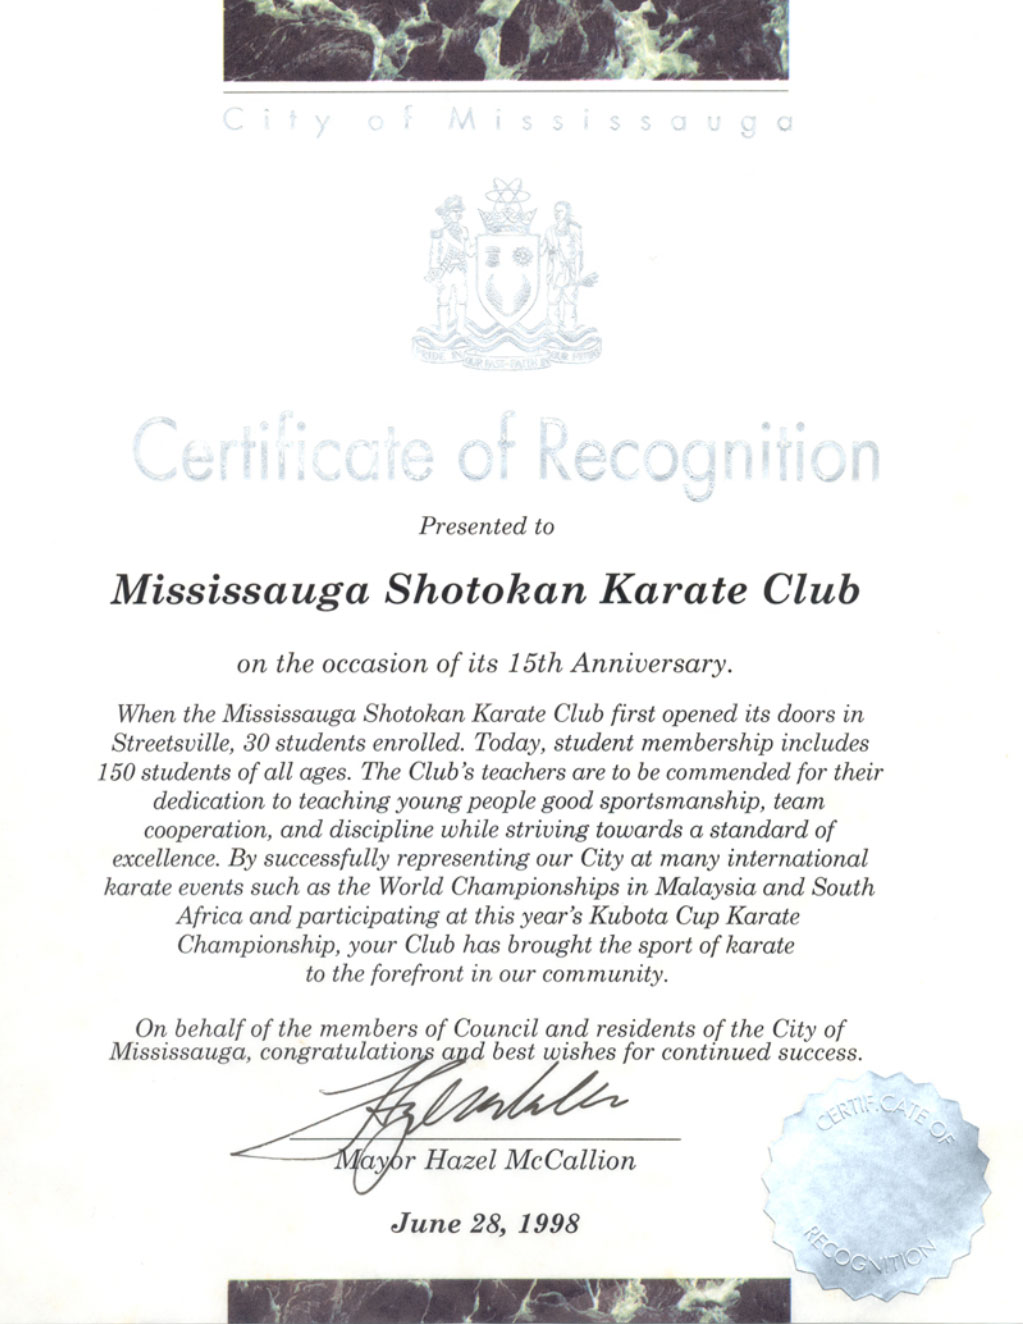 City of Mississauga Certificate of Recognition - Click to view the larger version.